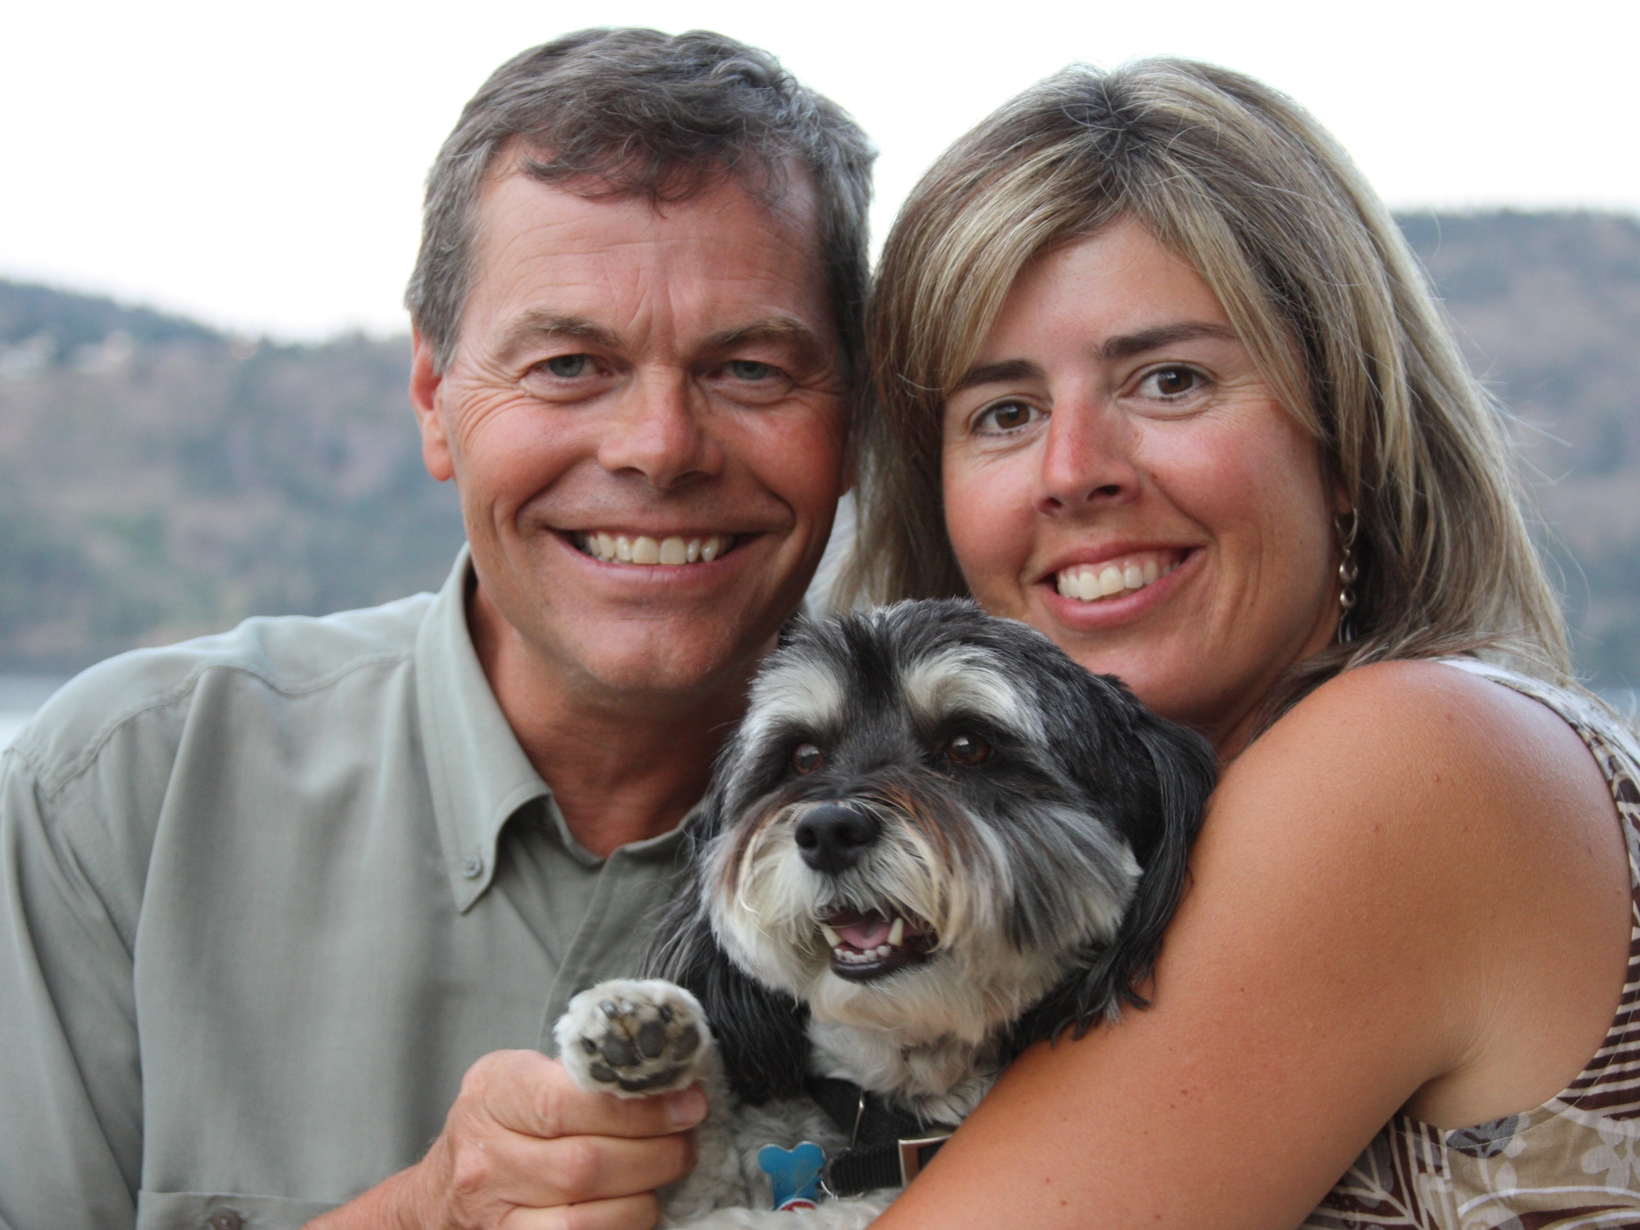 Alison & Barry from Kelowna, British Columbia, Canada